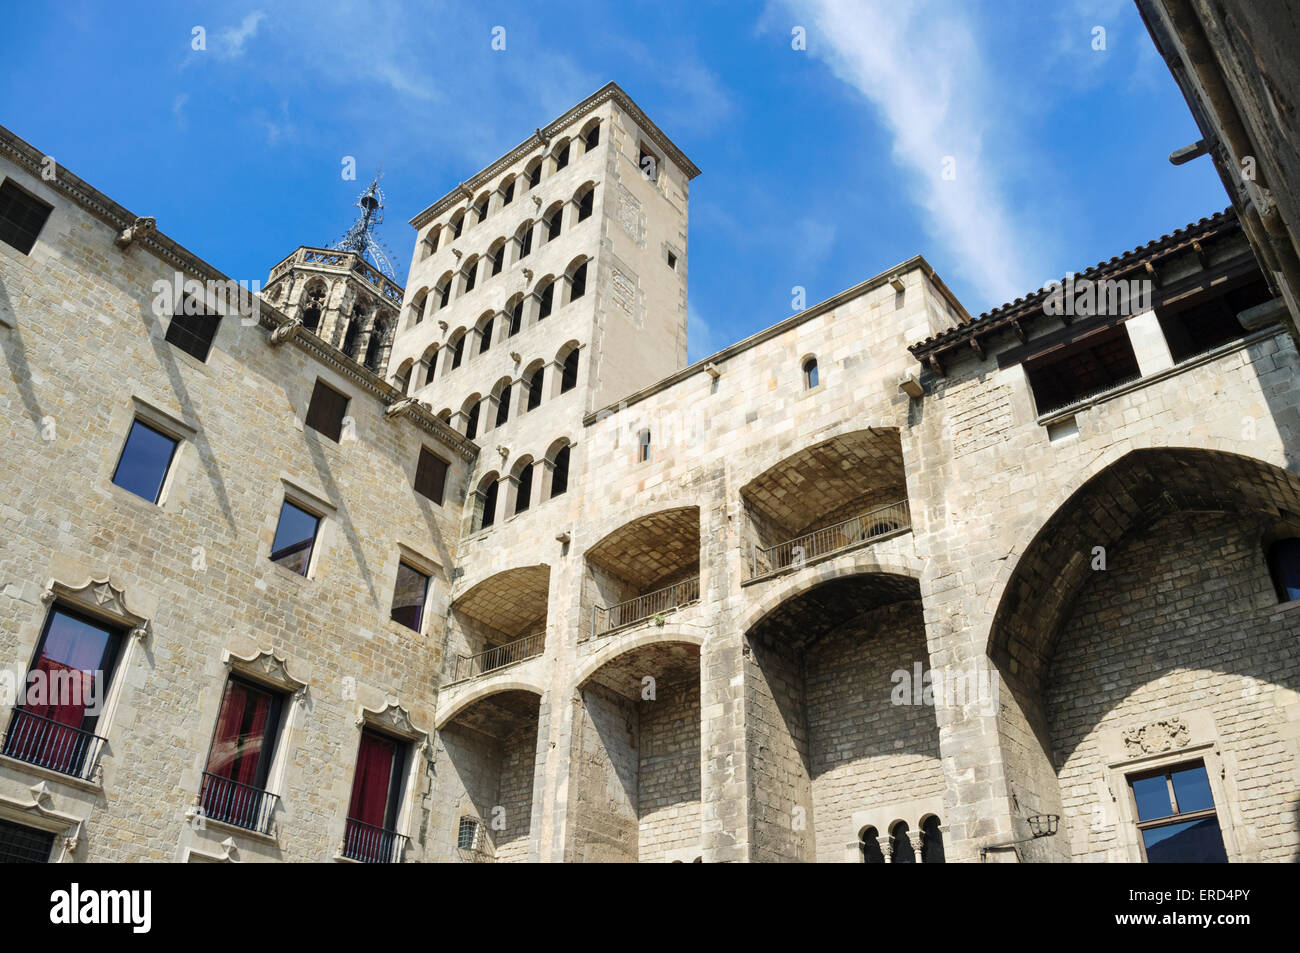 Palau Reial Major (Grand Royal Palace) in Placa del rei (King's Square) Gothic quarter, Barcelona, Spain - Stock Image